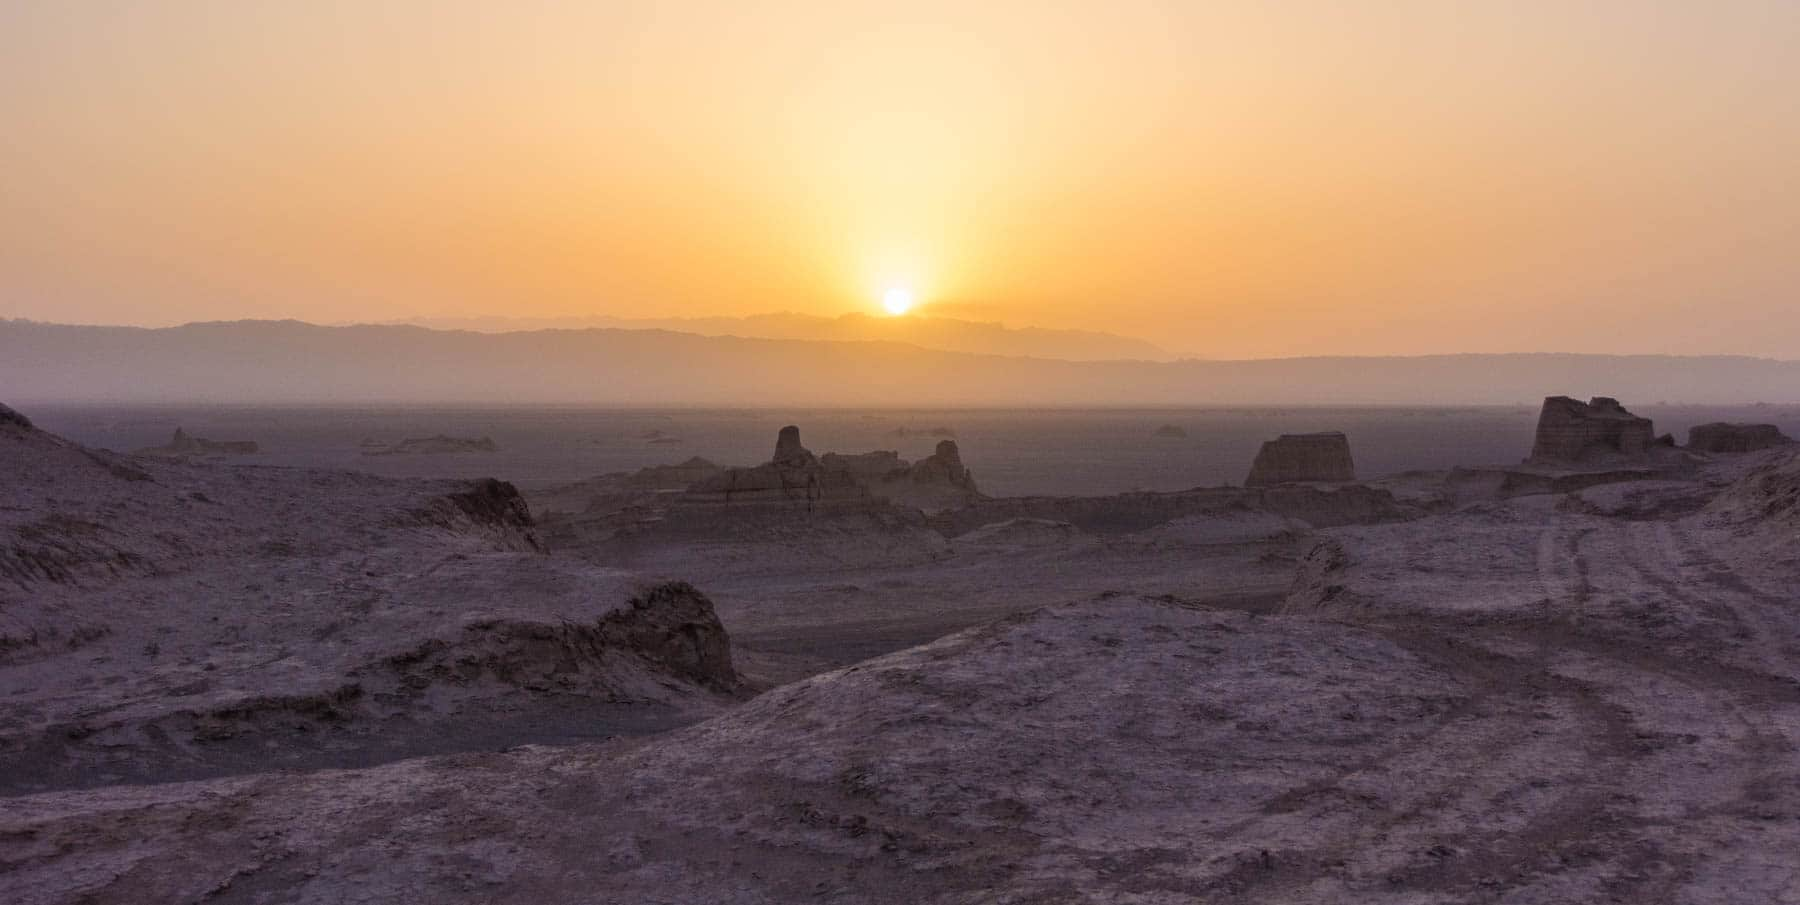 The sun setting over the Kaluts in Iran